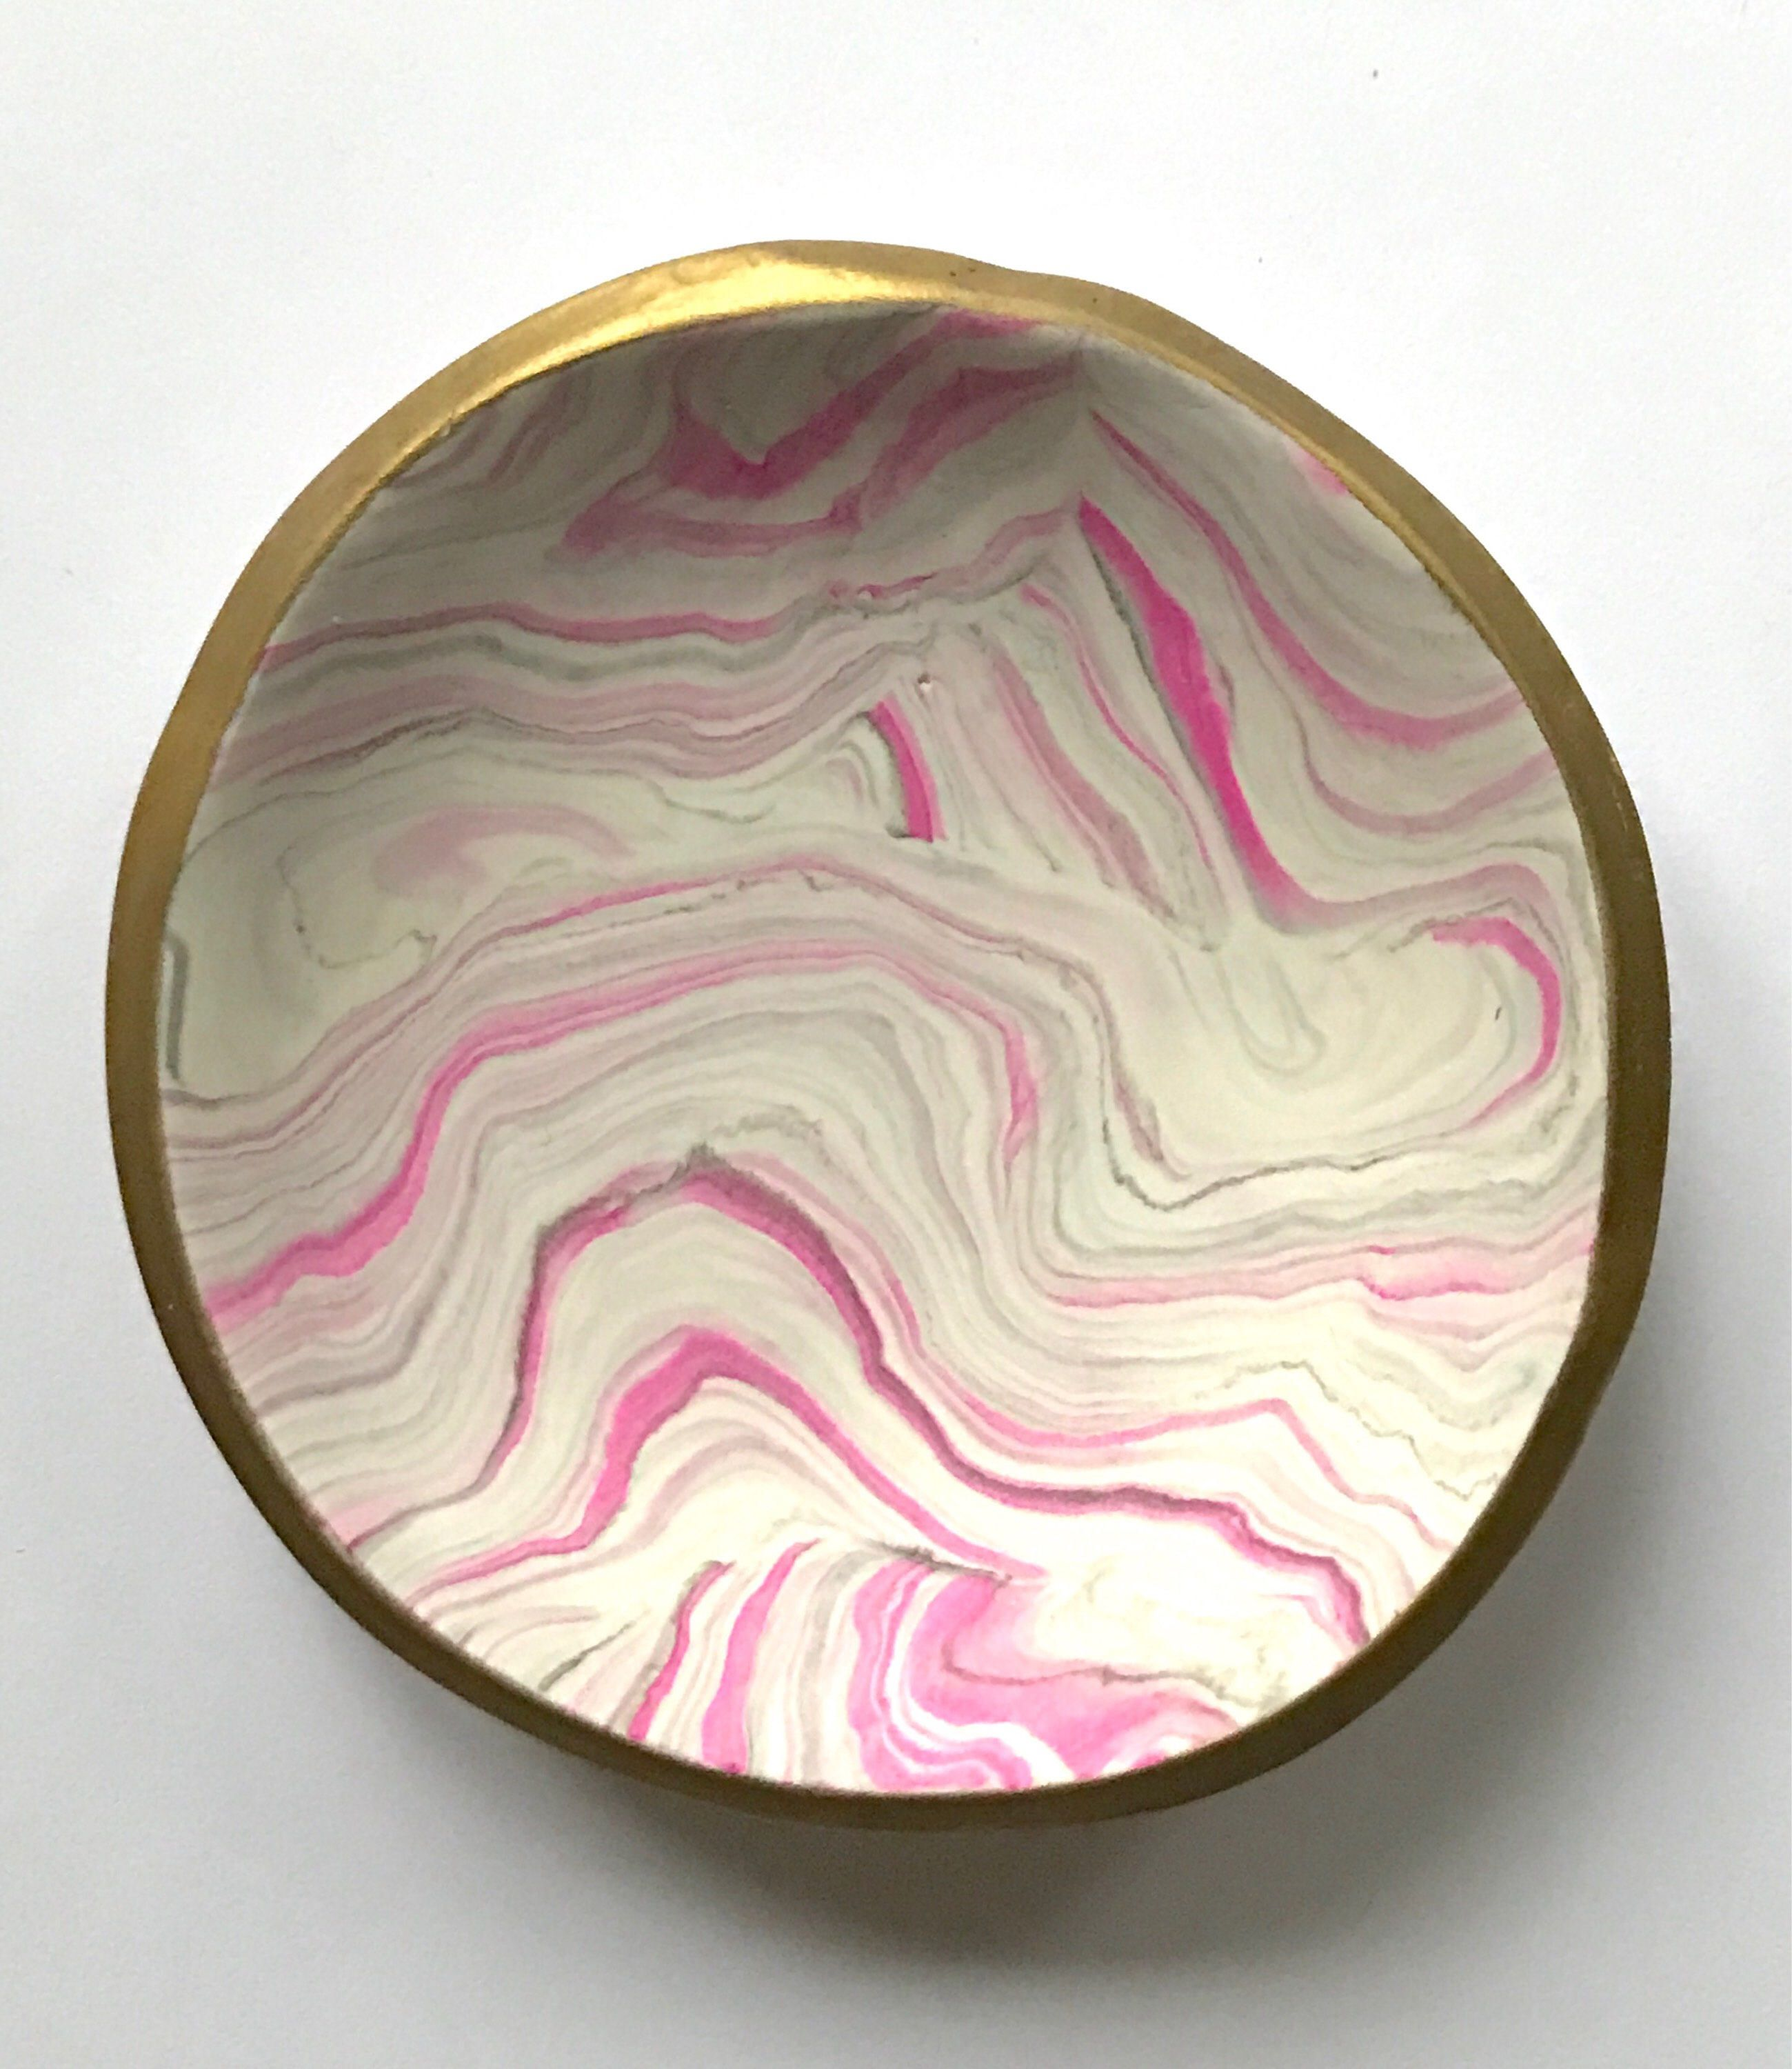 Gift under 20 Marbled Clay not Ceramic Dish Trinket Dish Gift for Her Jewelry Dish Bridesmaid gift Ring Dish Jewelry Storage